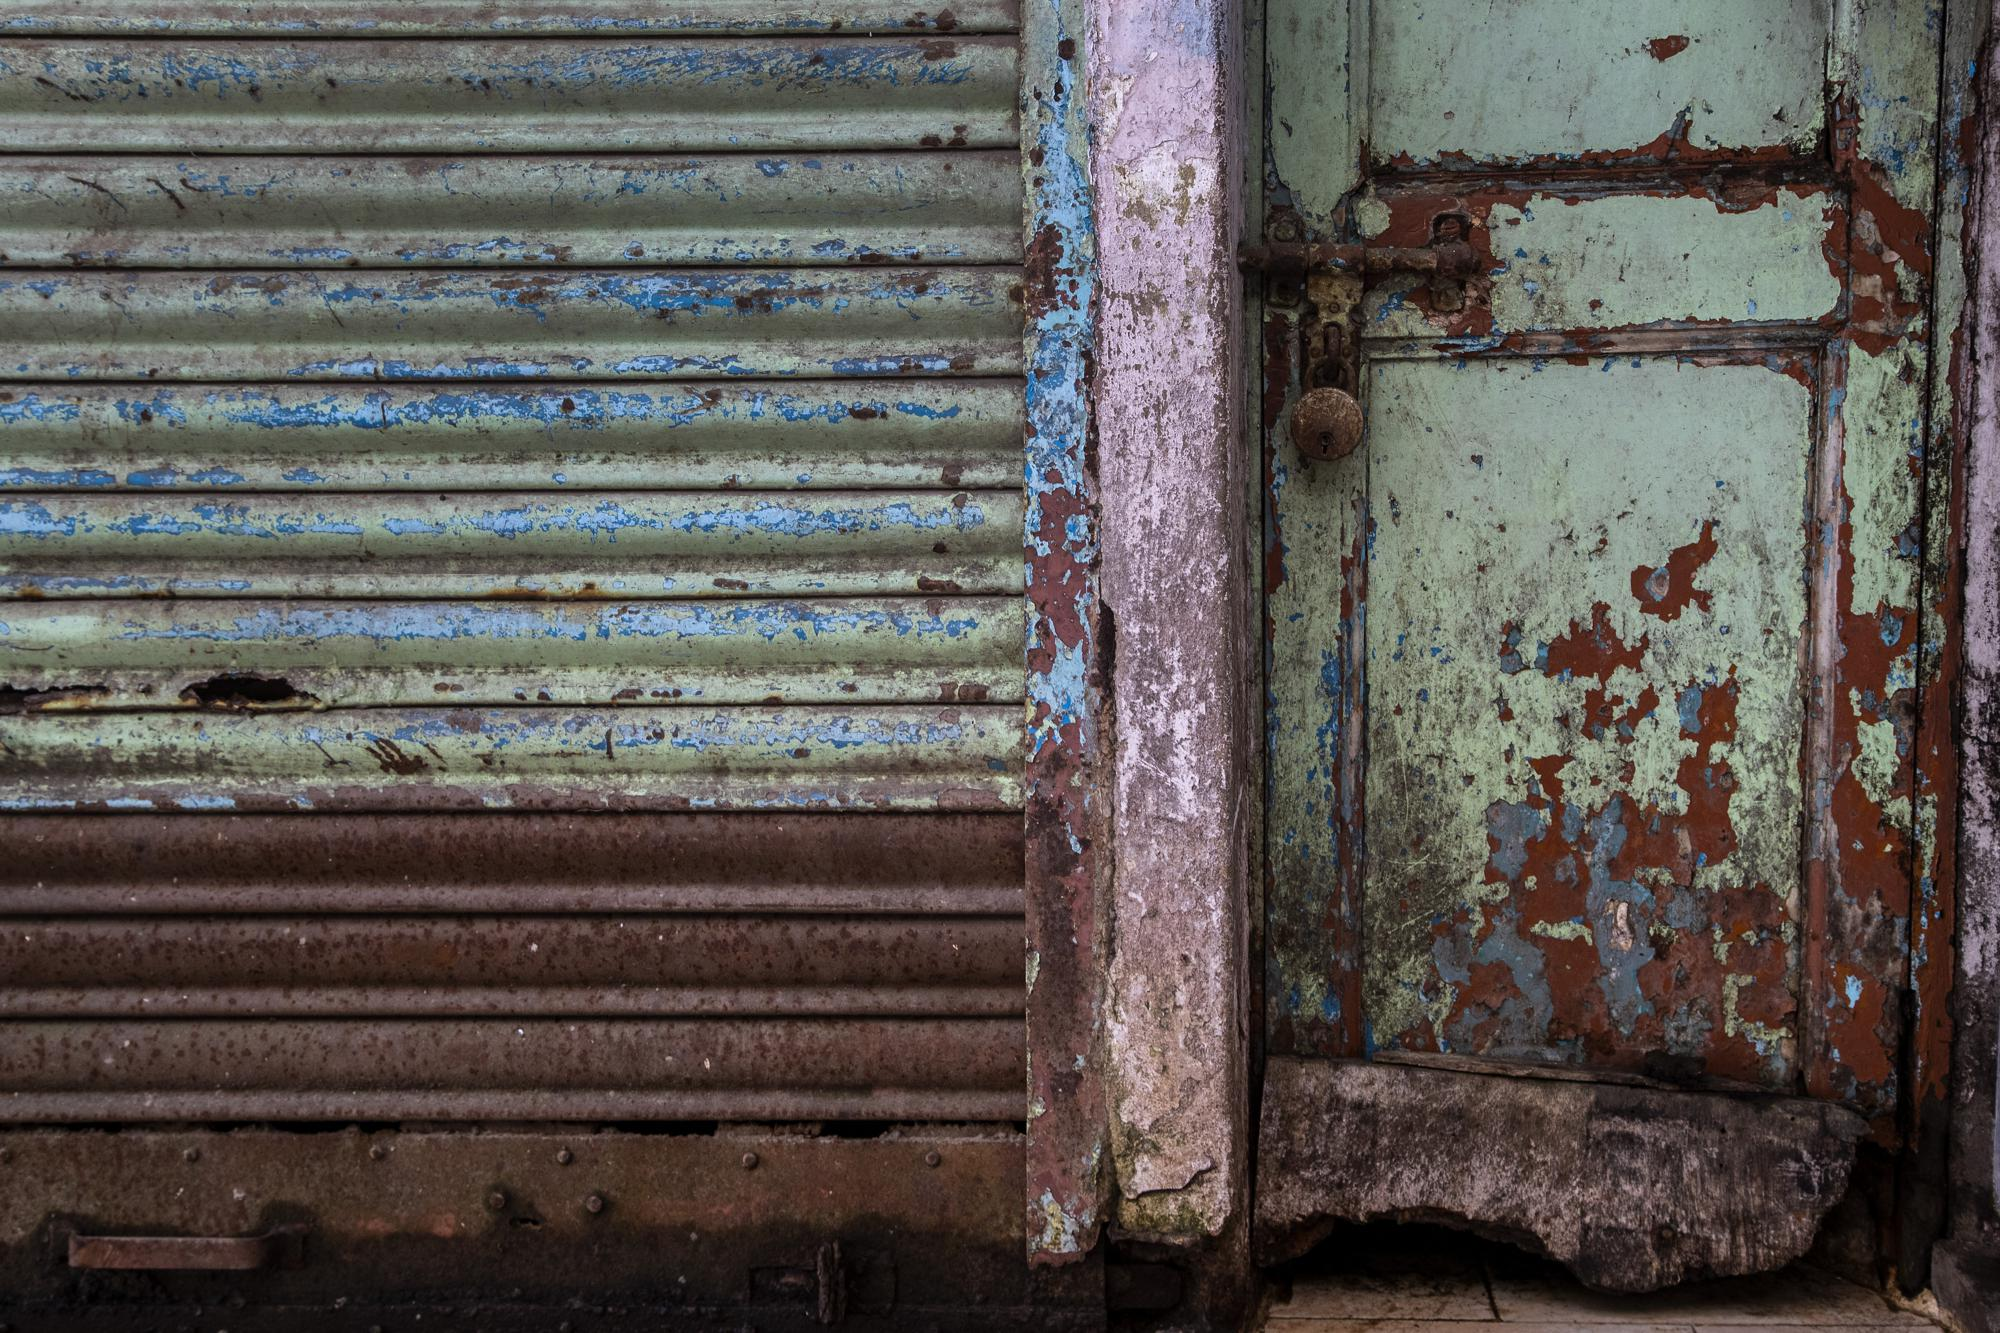 A shop is seen locked at a market area in Gauhati, India, on June 18, 2021. Rows of locked shops confront bargain-hunters for most of the day in Fancy Bazar, a nearly 200-year-old market that offered cheap prices until the COVID-19 pandemic hit Gauhati, the biggest city in India's remote northeast. (AP Photo/Anupam Nath)